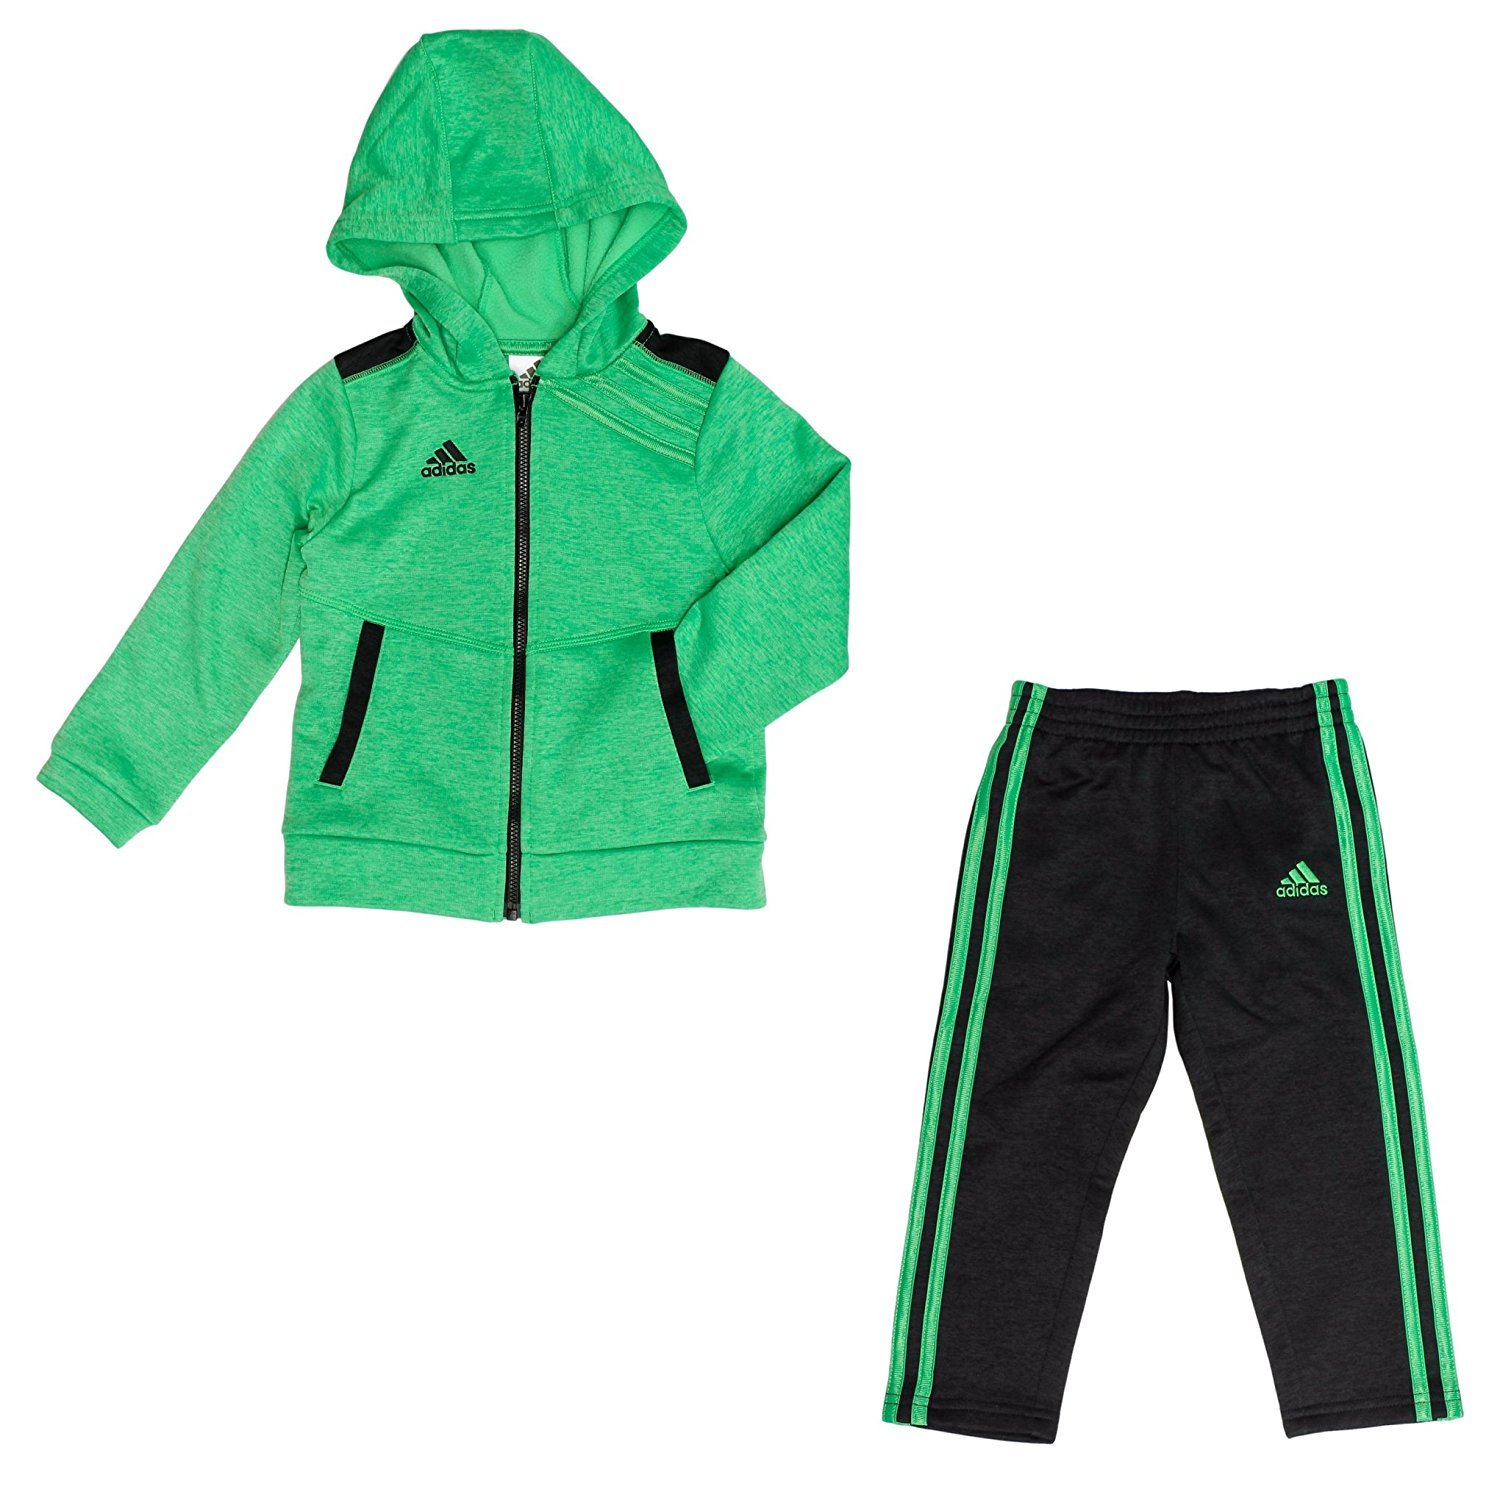 f8ddc8f69da79c 2-piece set includes: Long sleeve pullover with Hoodie and Jogger Pants  Kangaroo pocket on top. Pull on jogger with elastic waistband and rib knit  cuffs